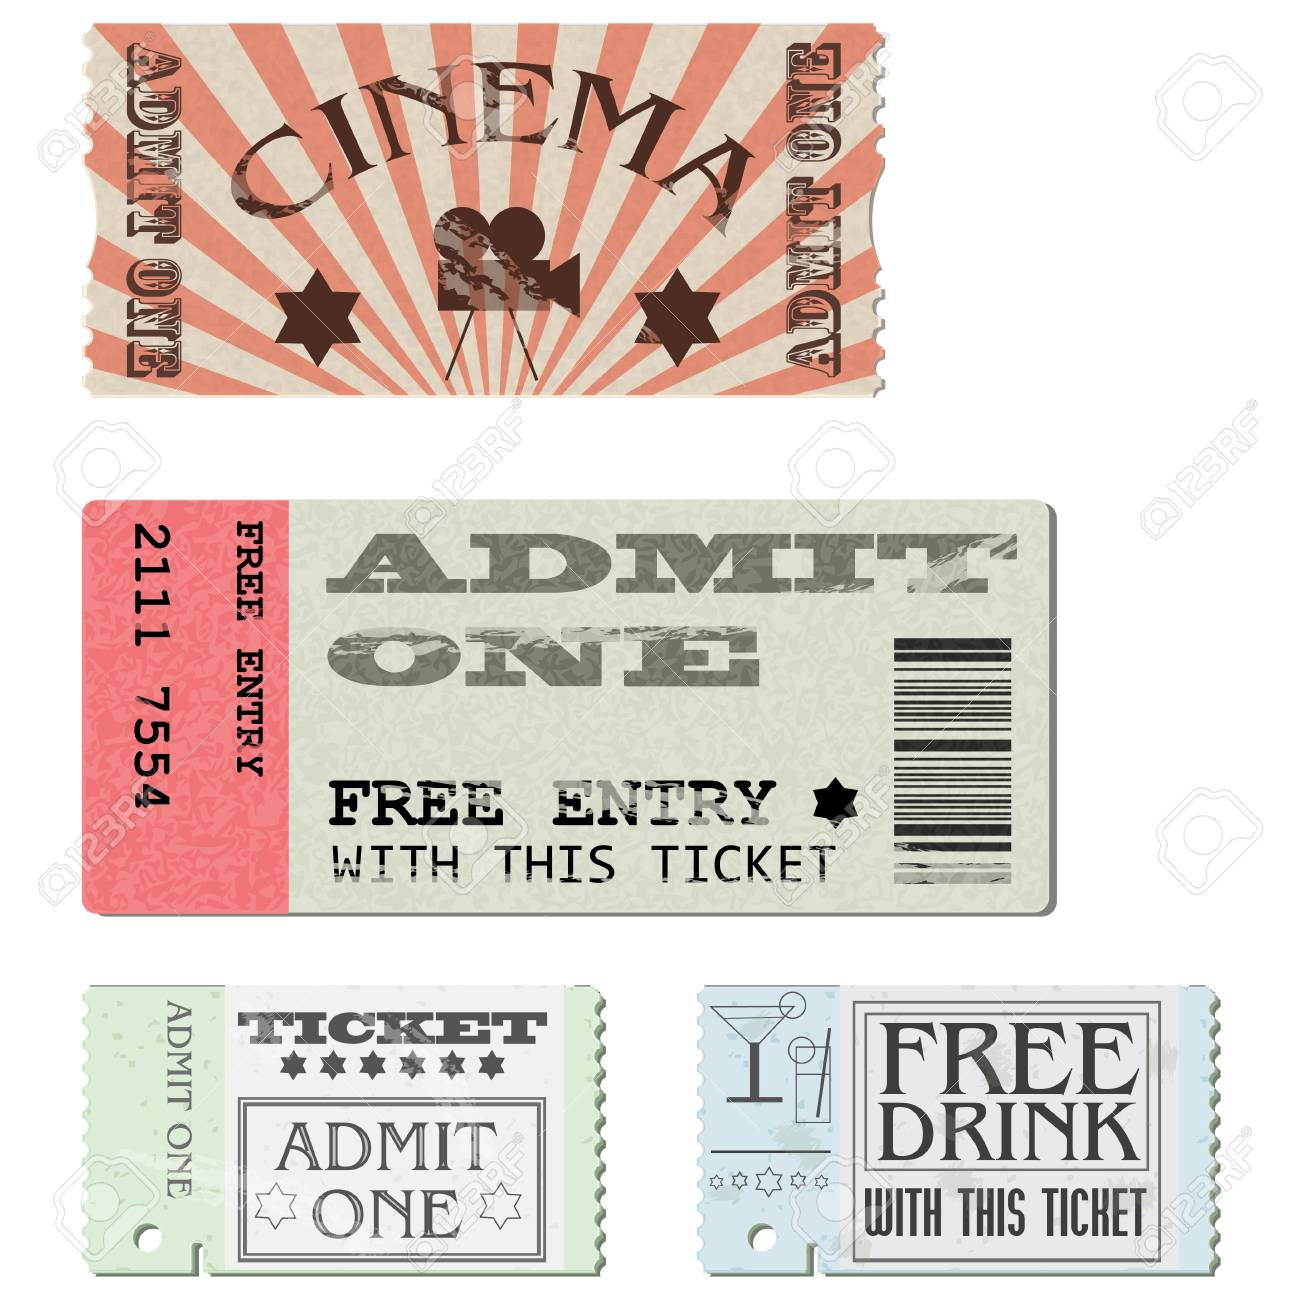 Tickets in different styles Stock Vector - 13119981